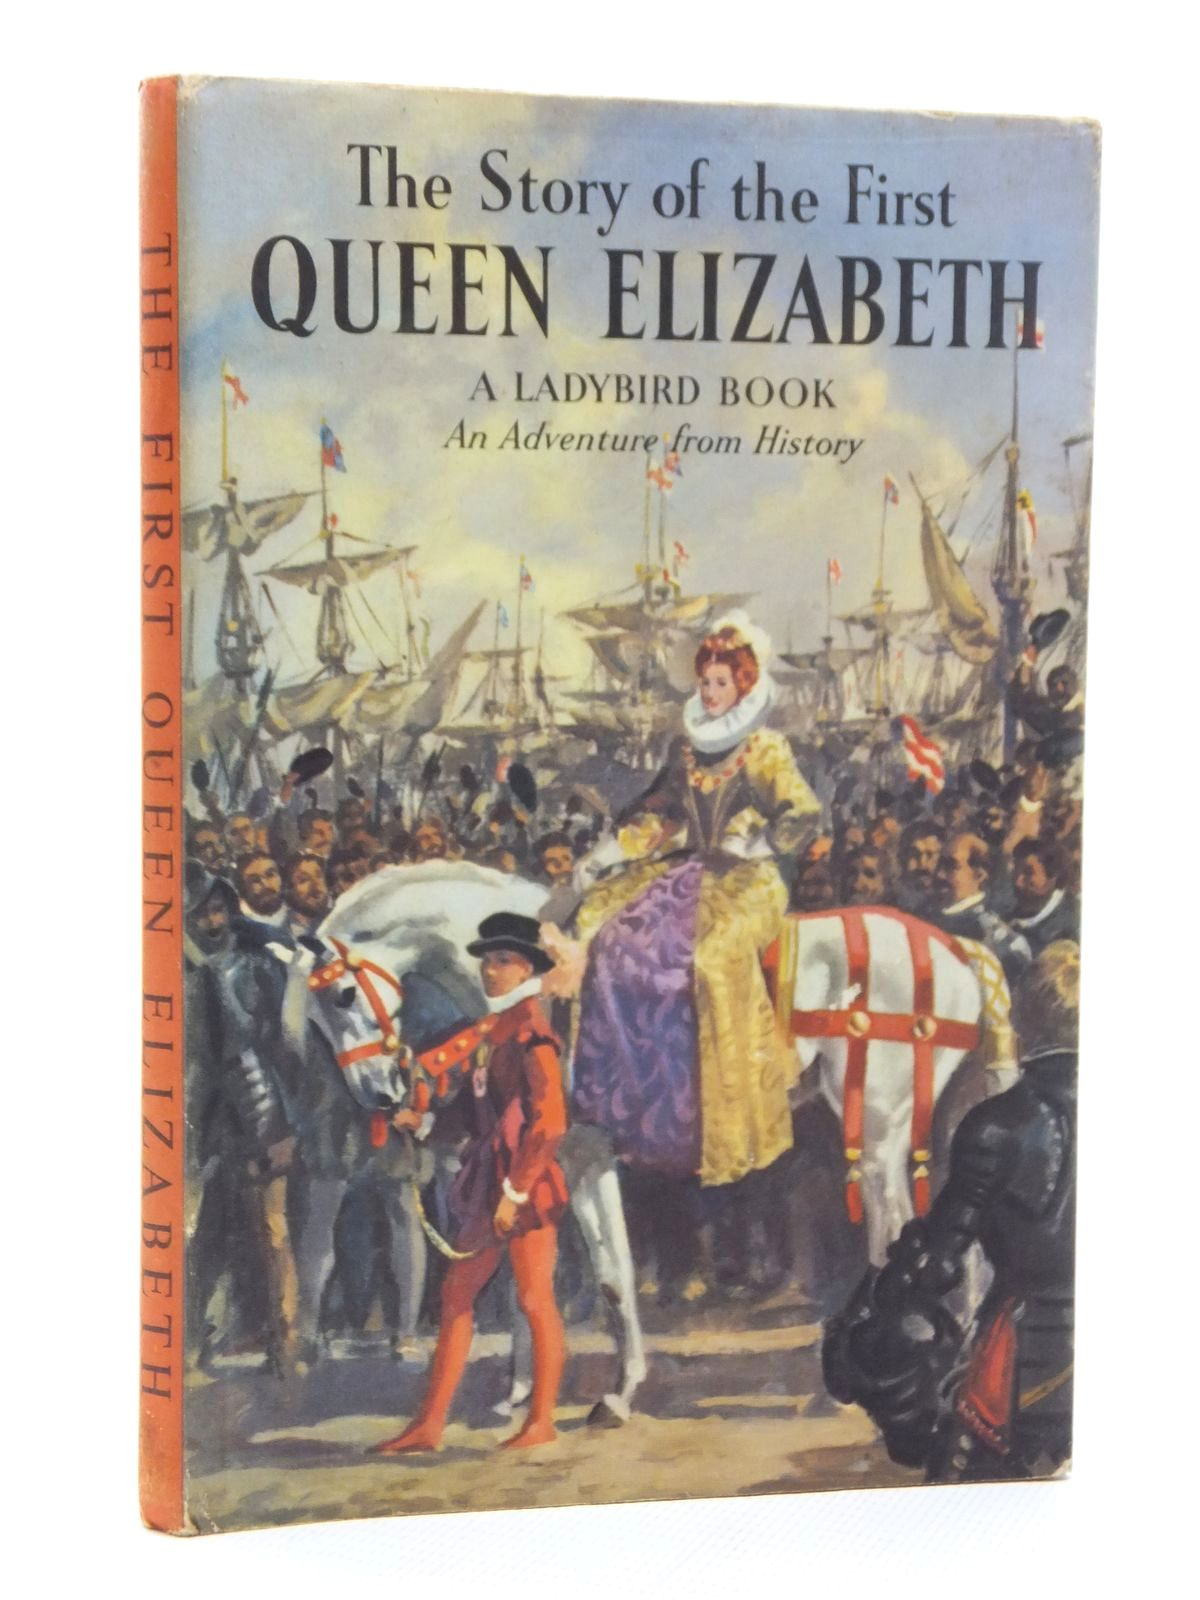 Photo of THE STORY OF THE FIRST QUEEN ELIZABETH written by Peach, L. Du Garde illustrated by Kenney, John published by Wills & Hepworth Ltd. (STOCK CODE: 1609839)  for sale by Stella & Rose's Books